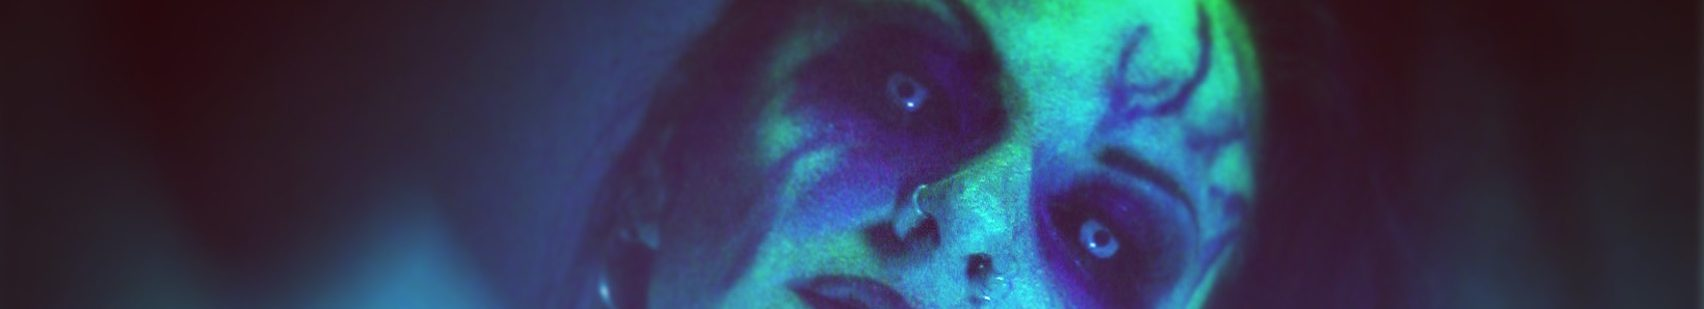 cropped-MO_Ghoul_Blue_017.jpg